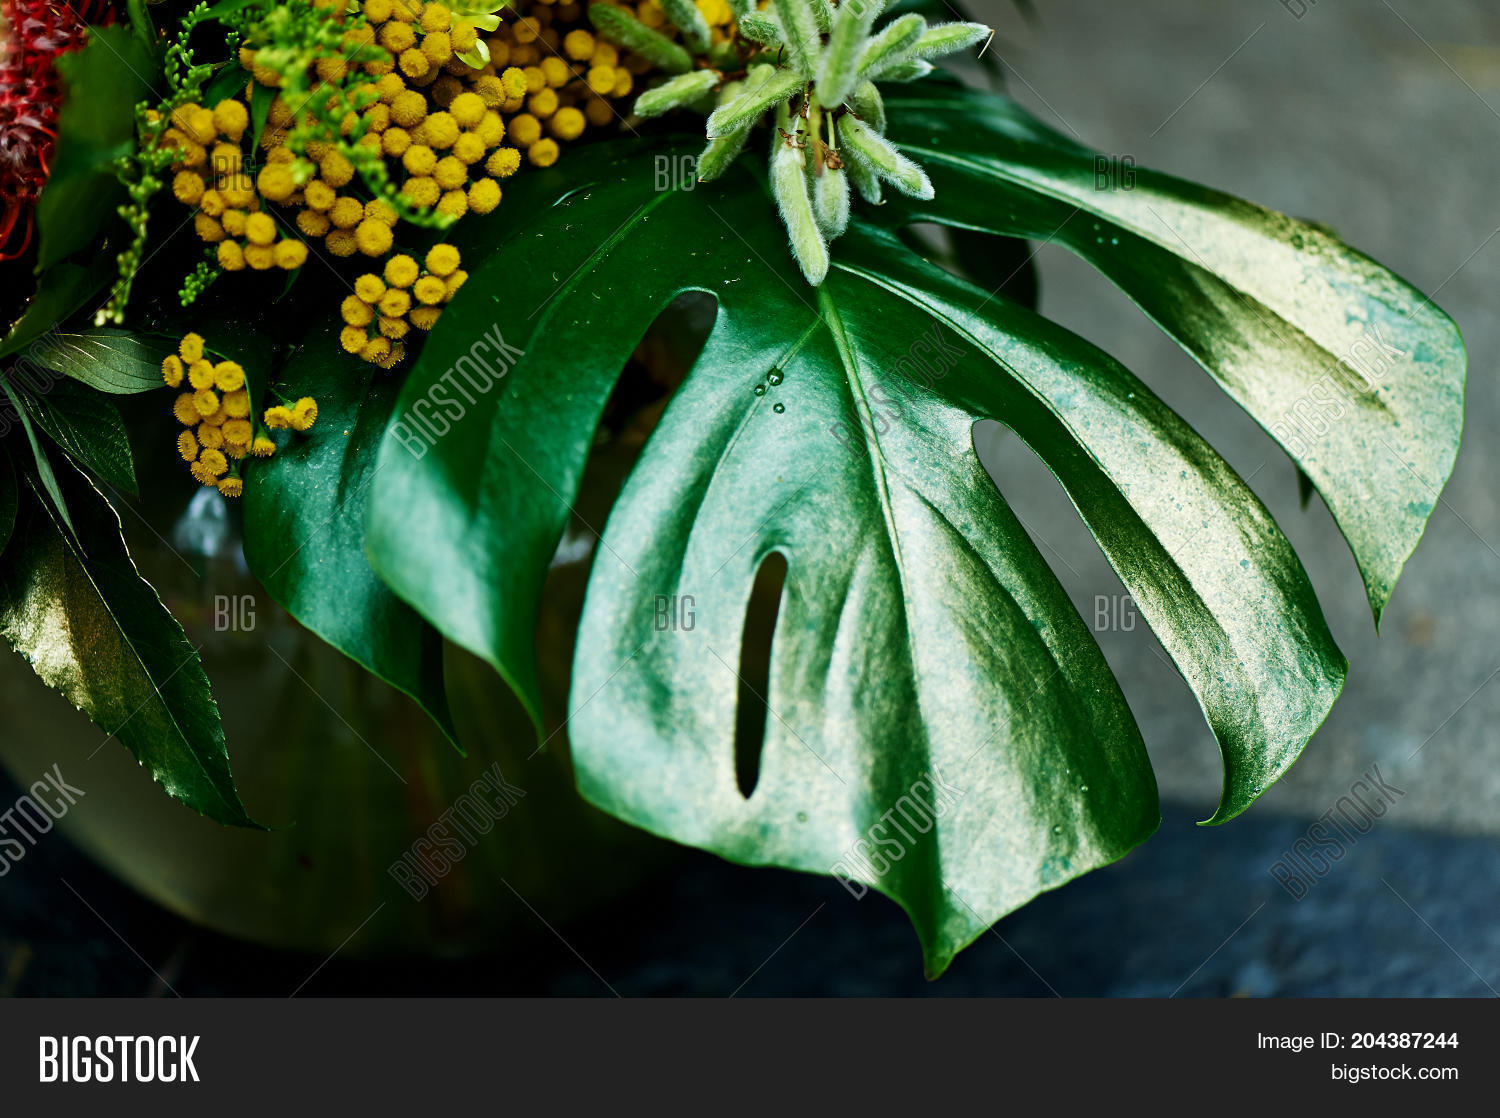 Leaf Monstera Painted Image Photo Free Trial Bigstock